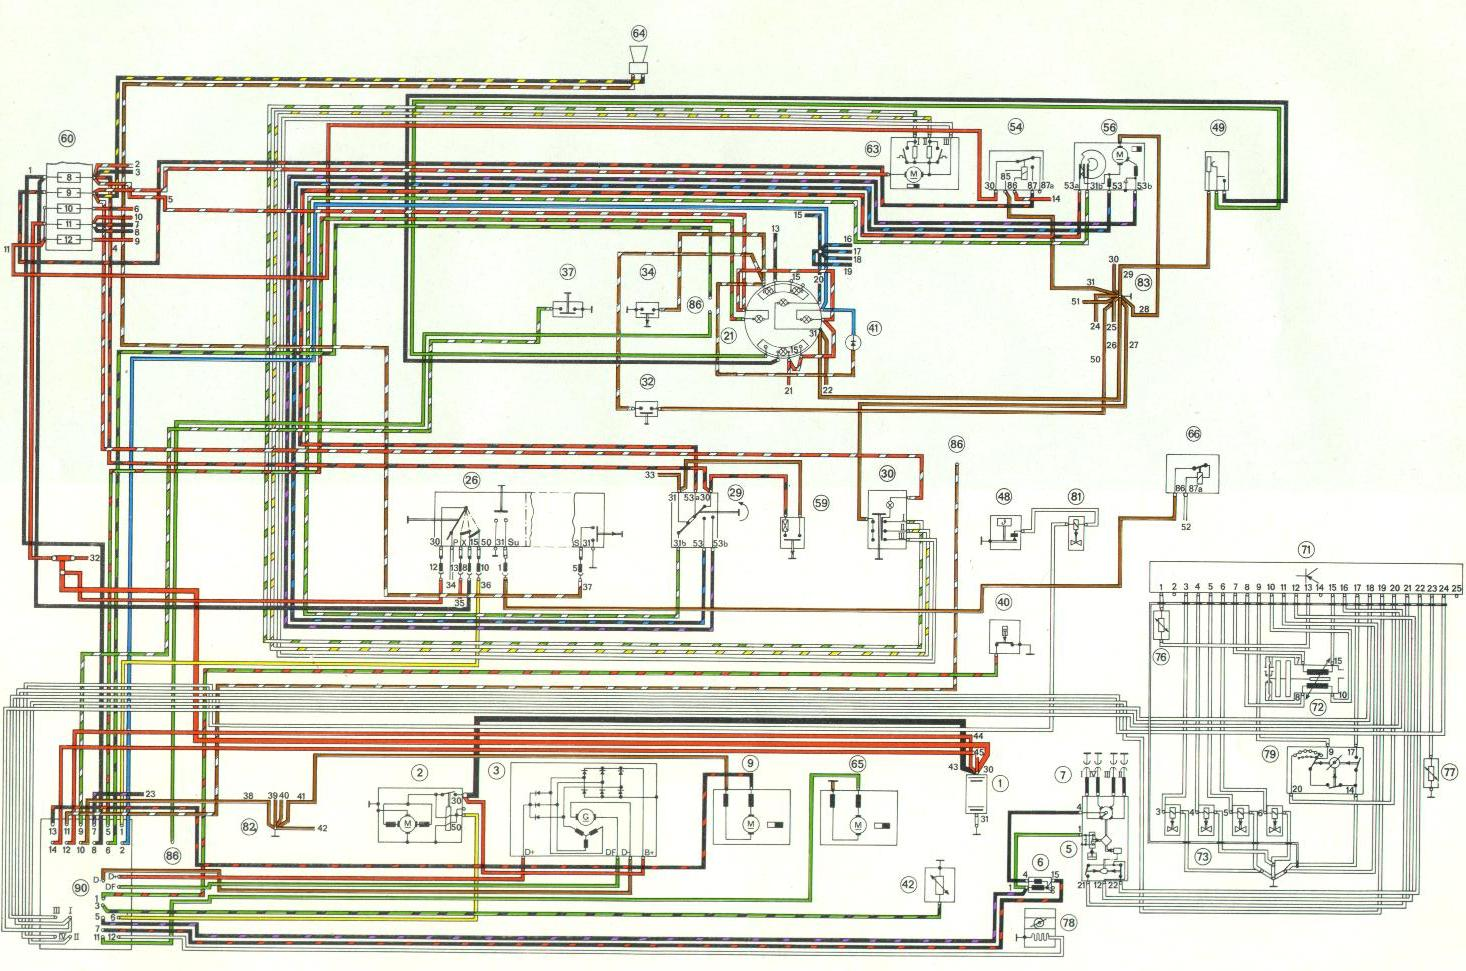 hight resolution of 1975 porsche 914 wiring diagram 31 wiring diagram images 1973 porsche 914 wiring diagram porsche 914 wiring diagrams